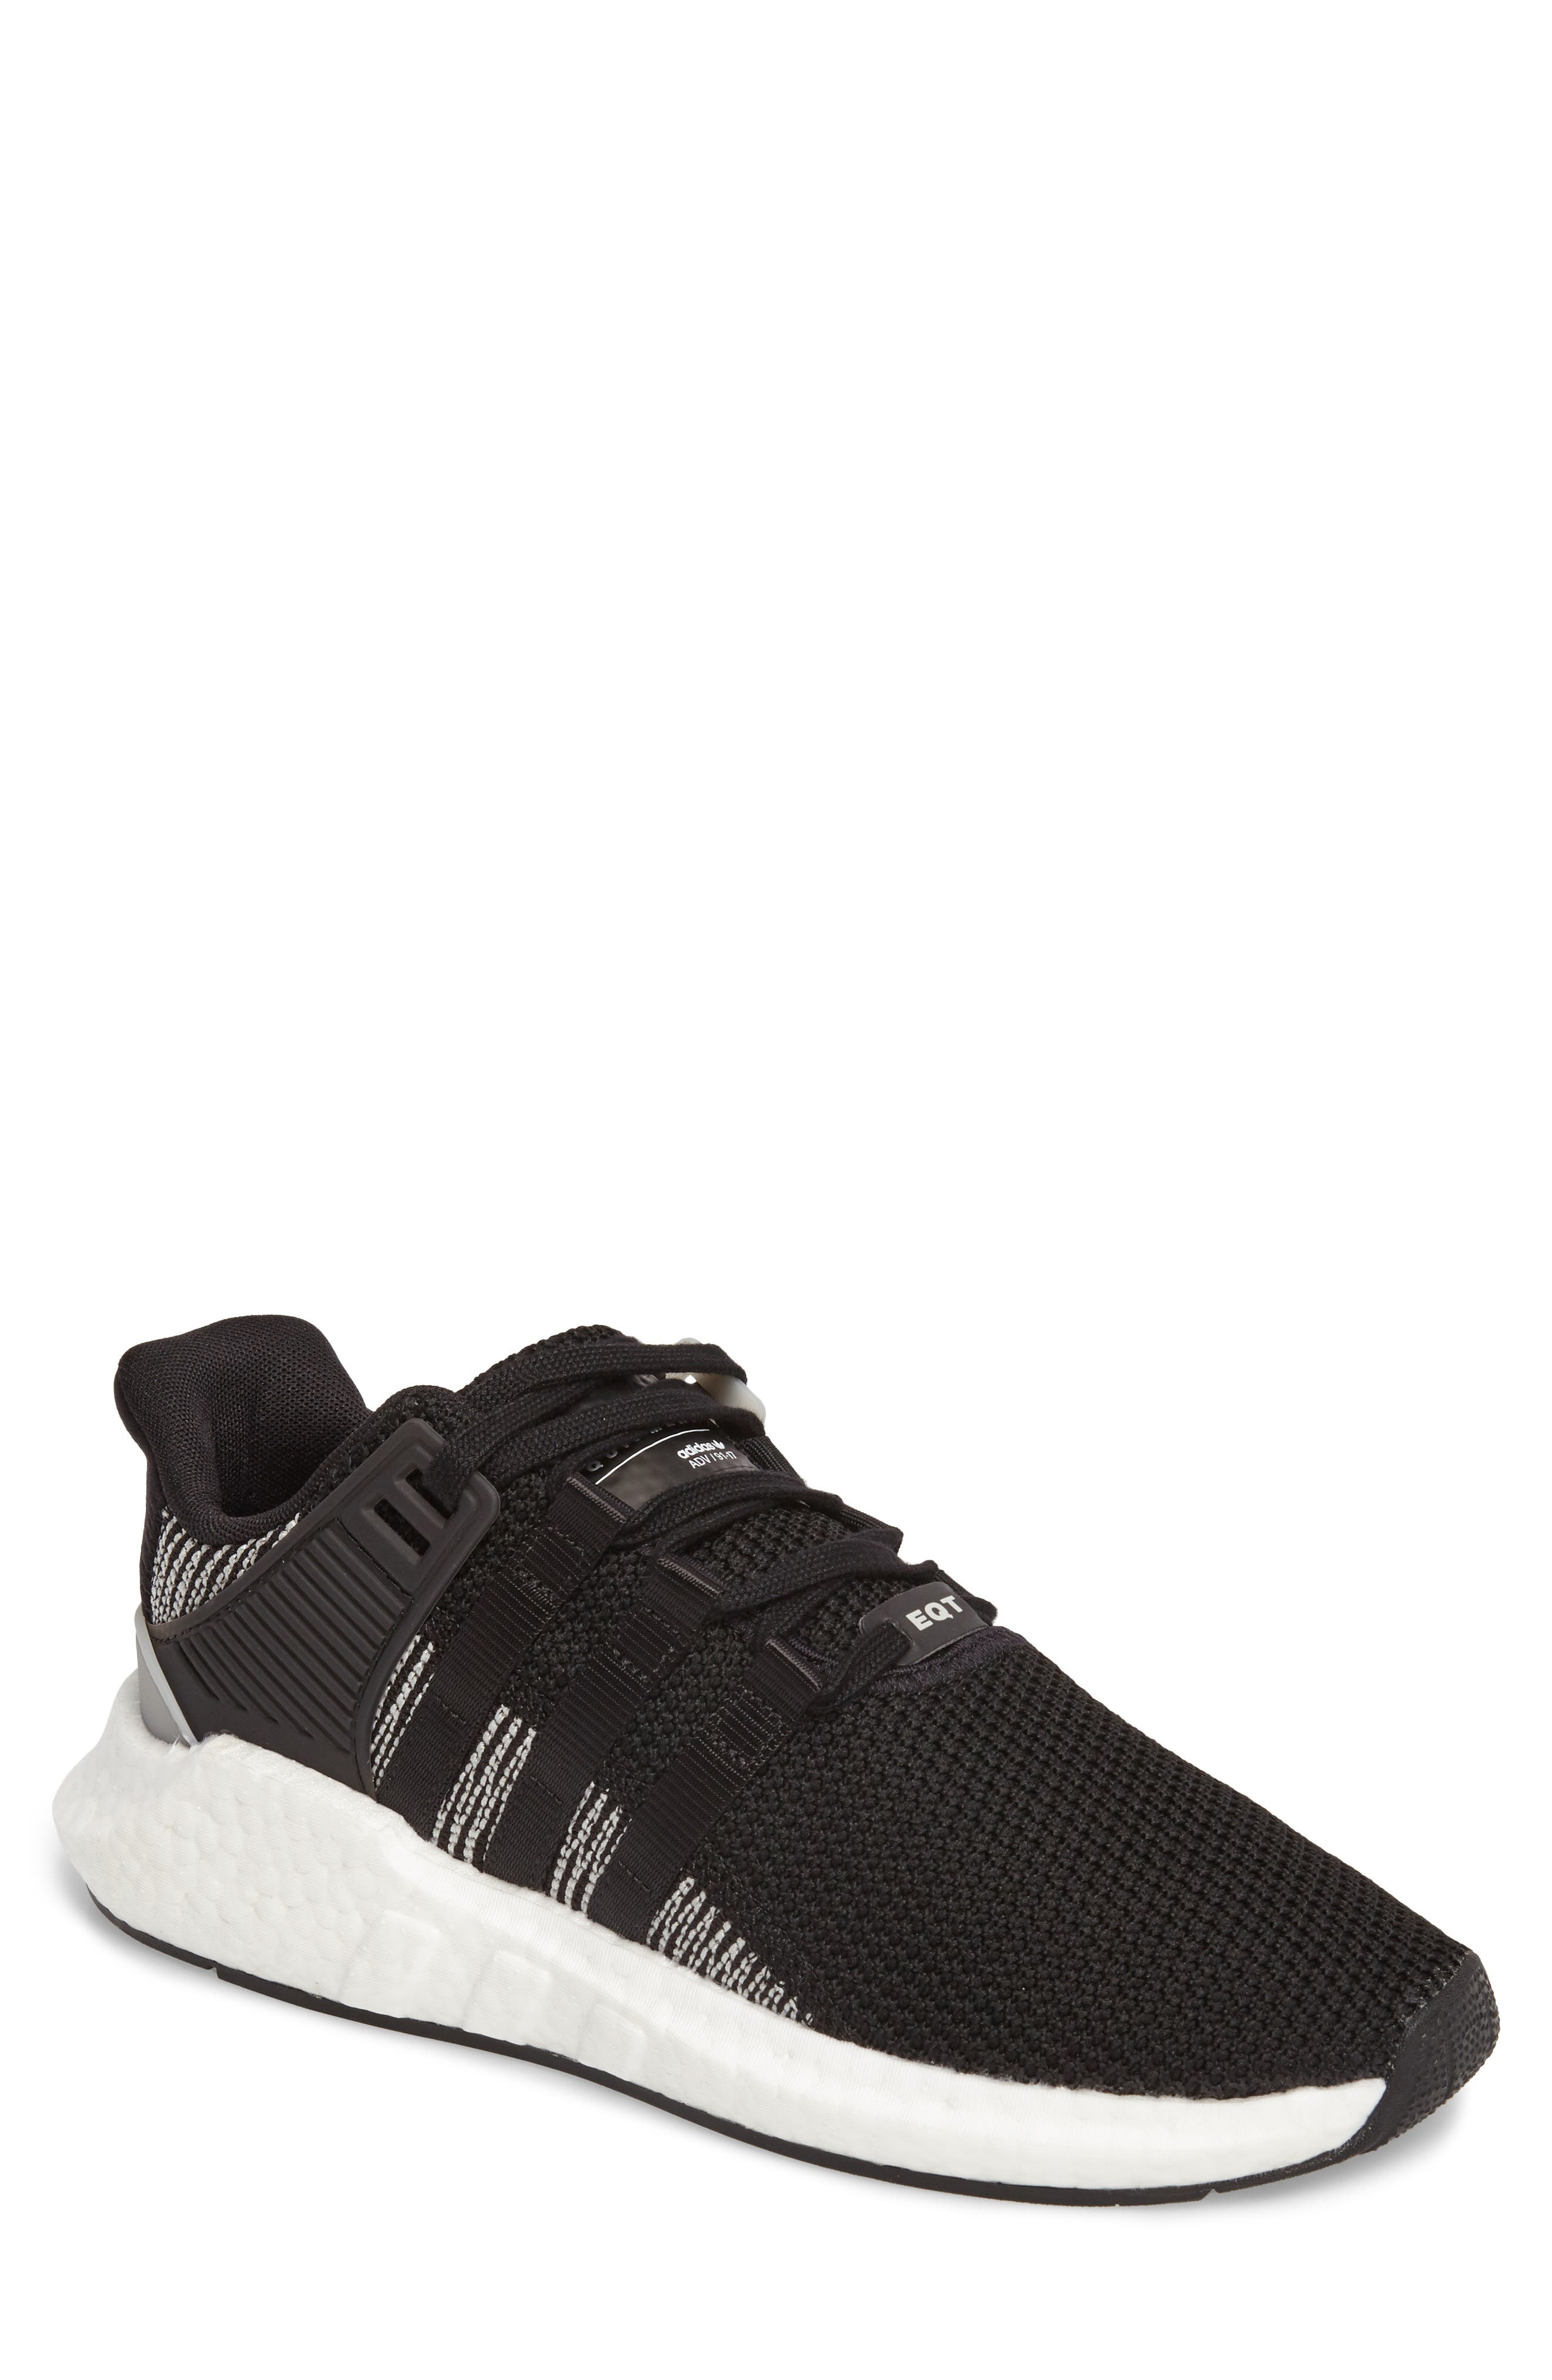 ADIDAS EQT Support 93/17 Sneaker, Main, color, 001